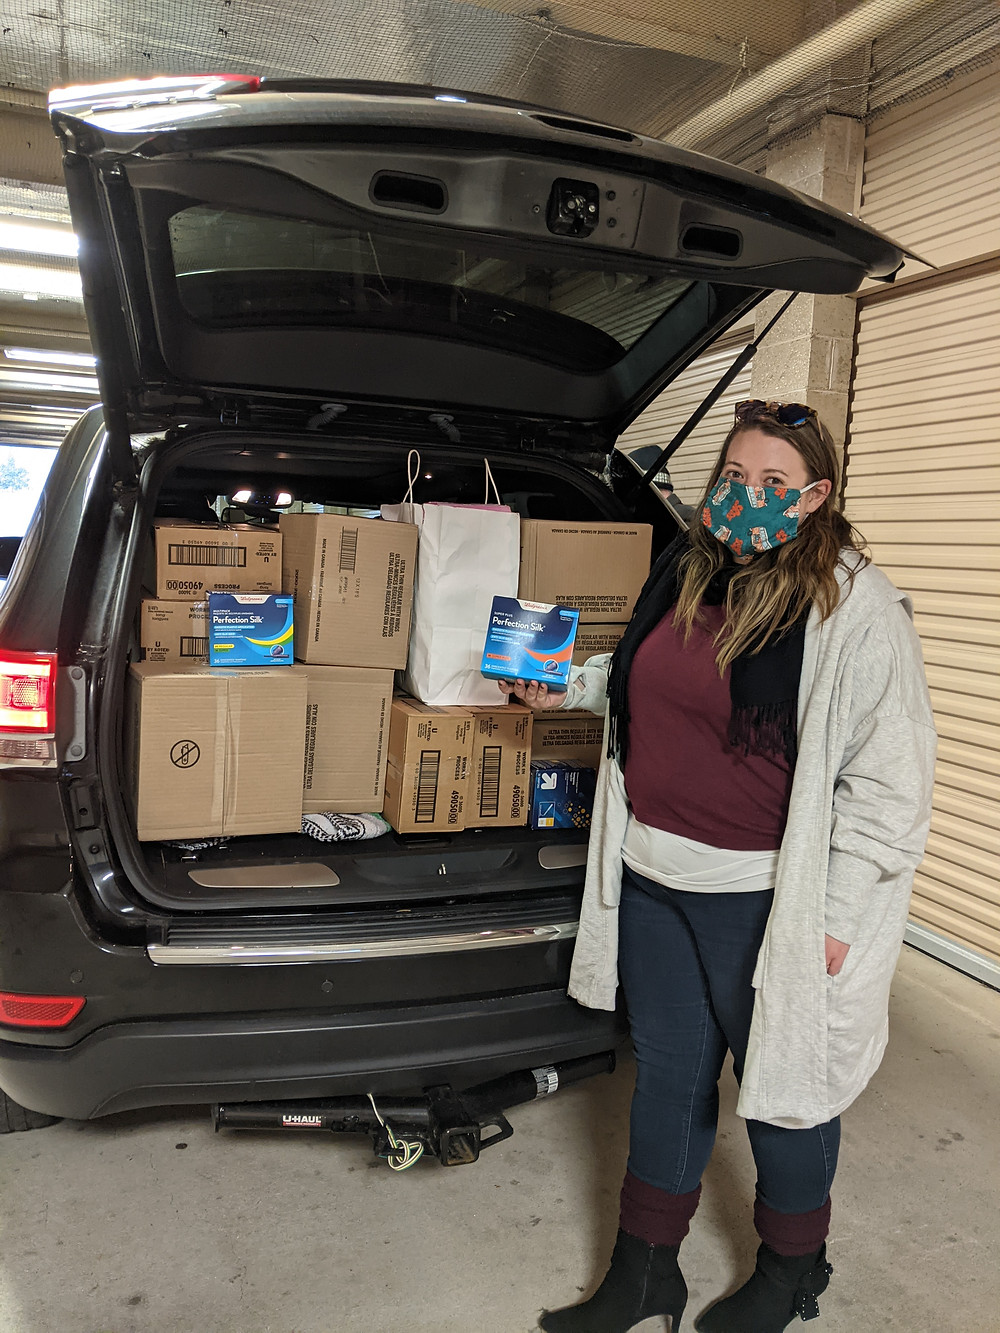 This image shows World U.P. CEO, Liz Dukette, standing in front of an open trunk which contains multiple boxes of feminine hygiene products. Liz is displaying a box.